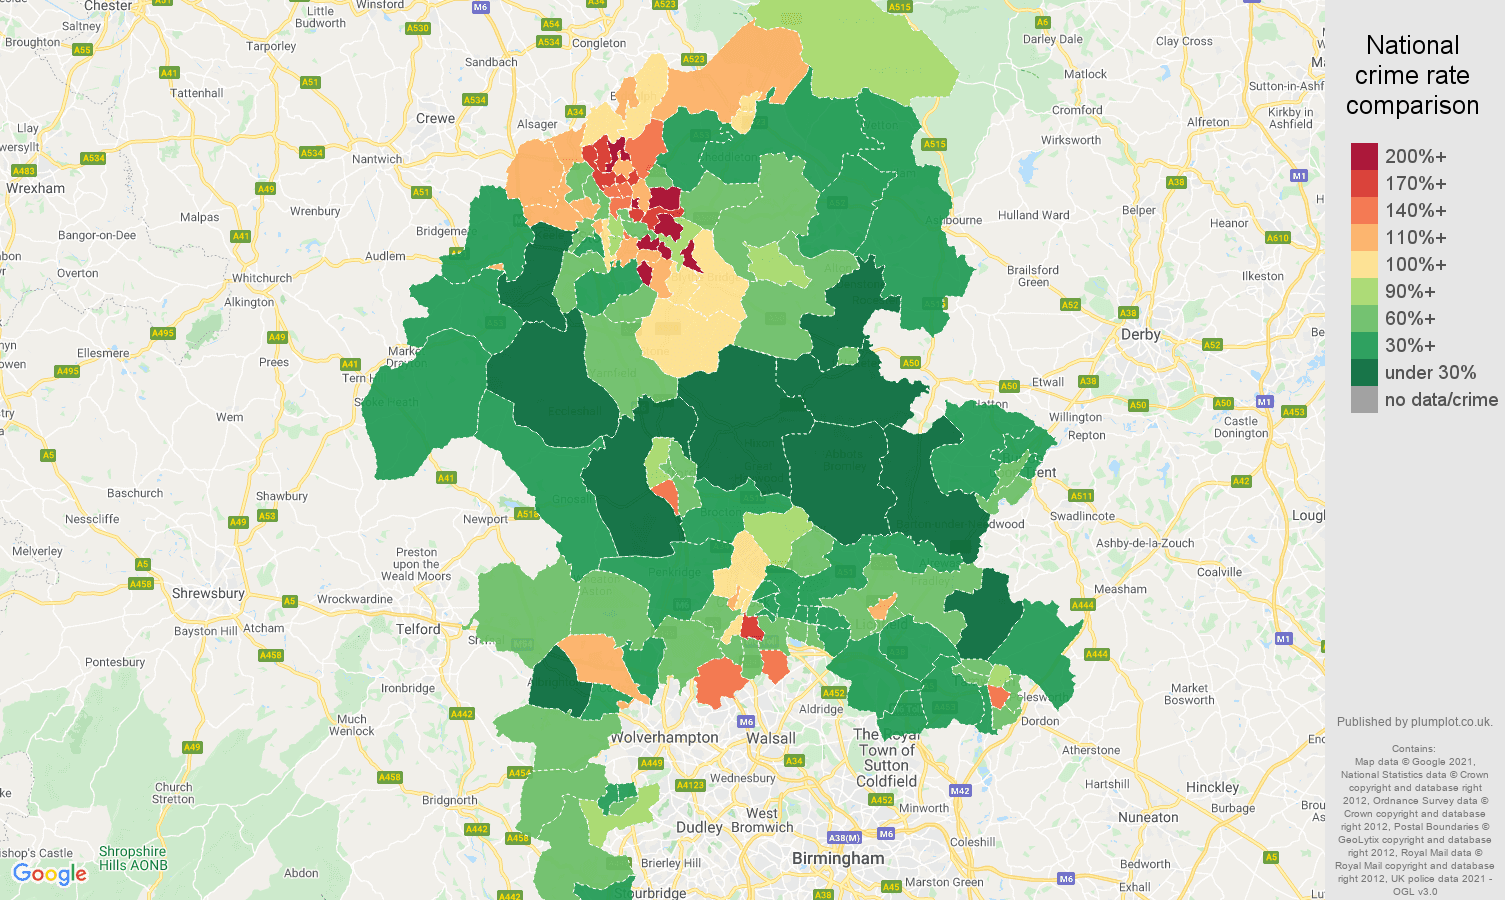 Staffordshire criminal damage and arson crime rate comparison map